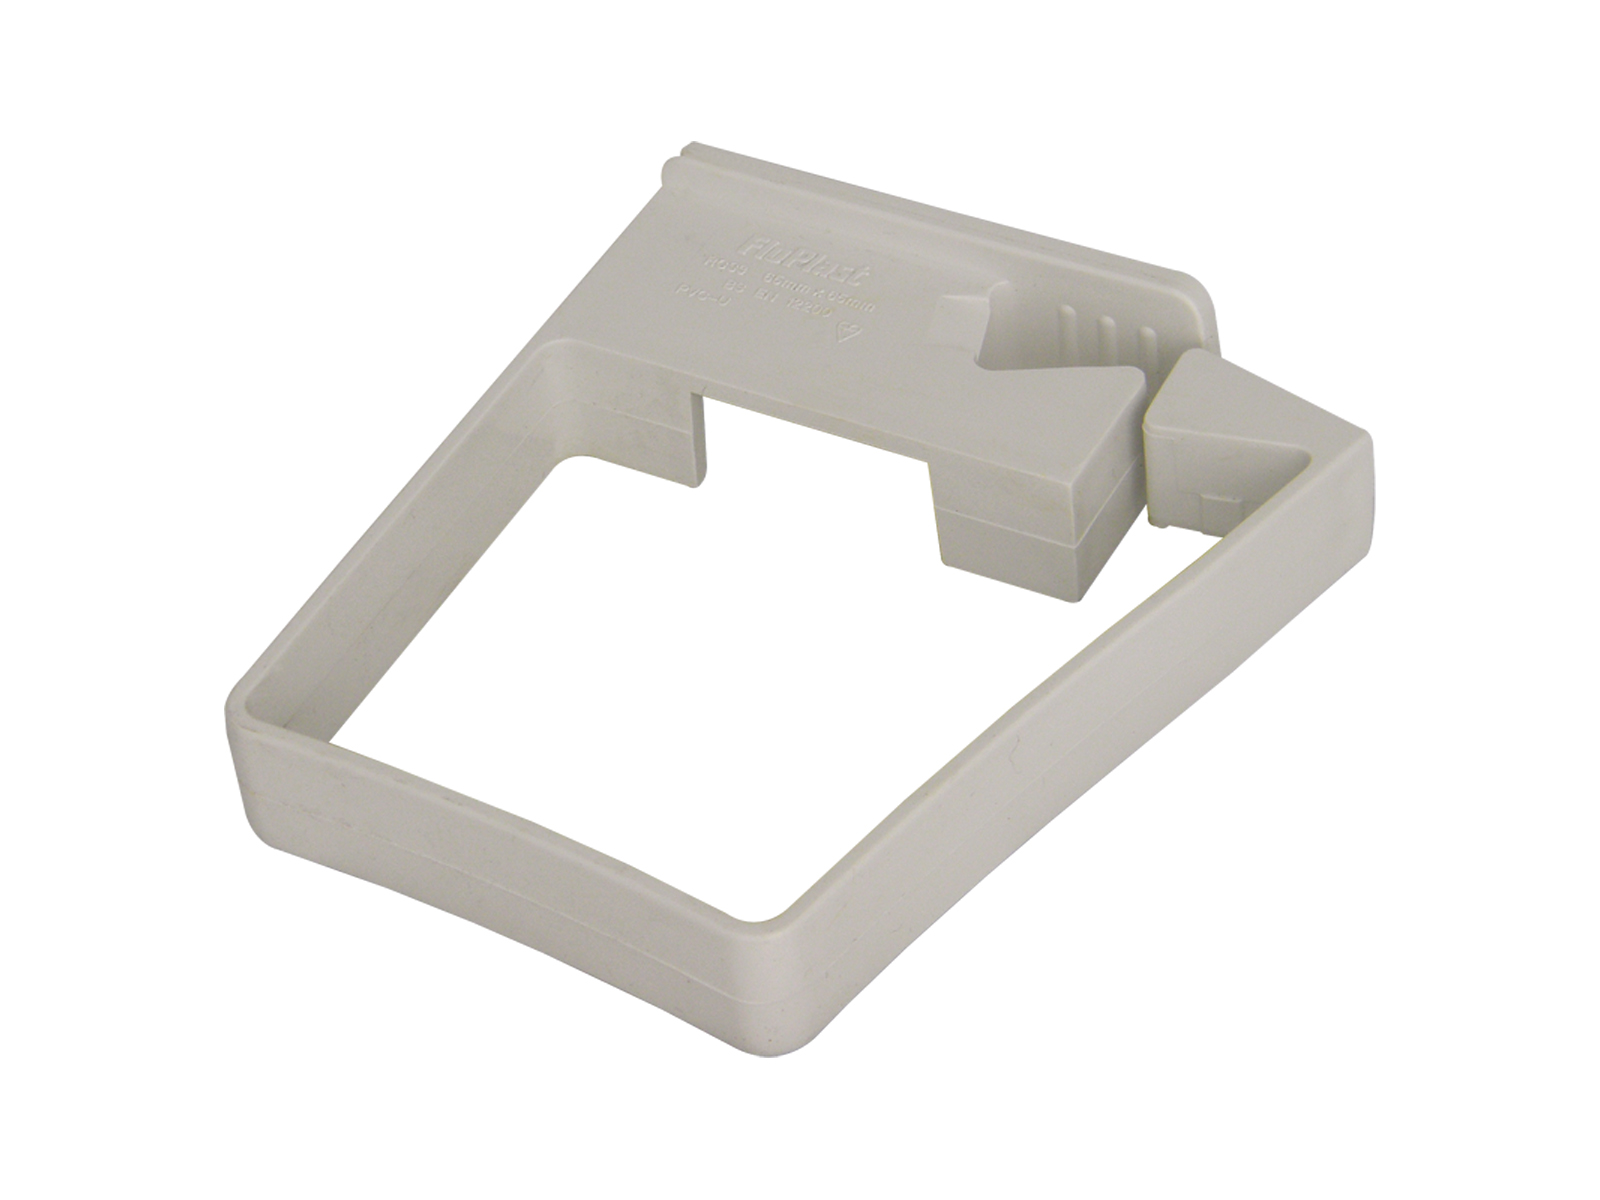 FLOPLAST 65MM SQUARE DOWNPIPE - RCS3 SINGLE FIX PIPE CLIP - WHITE